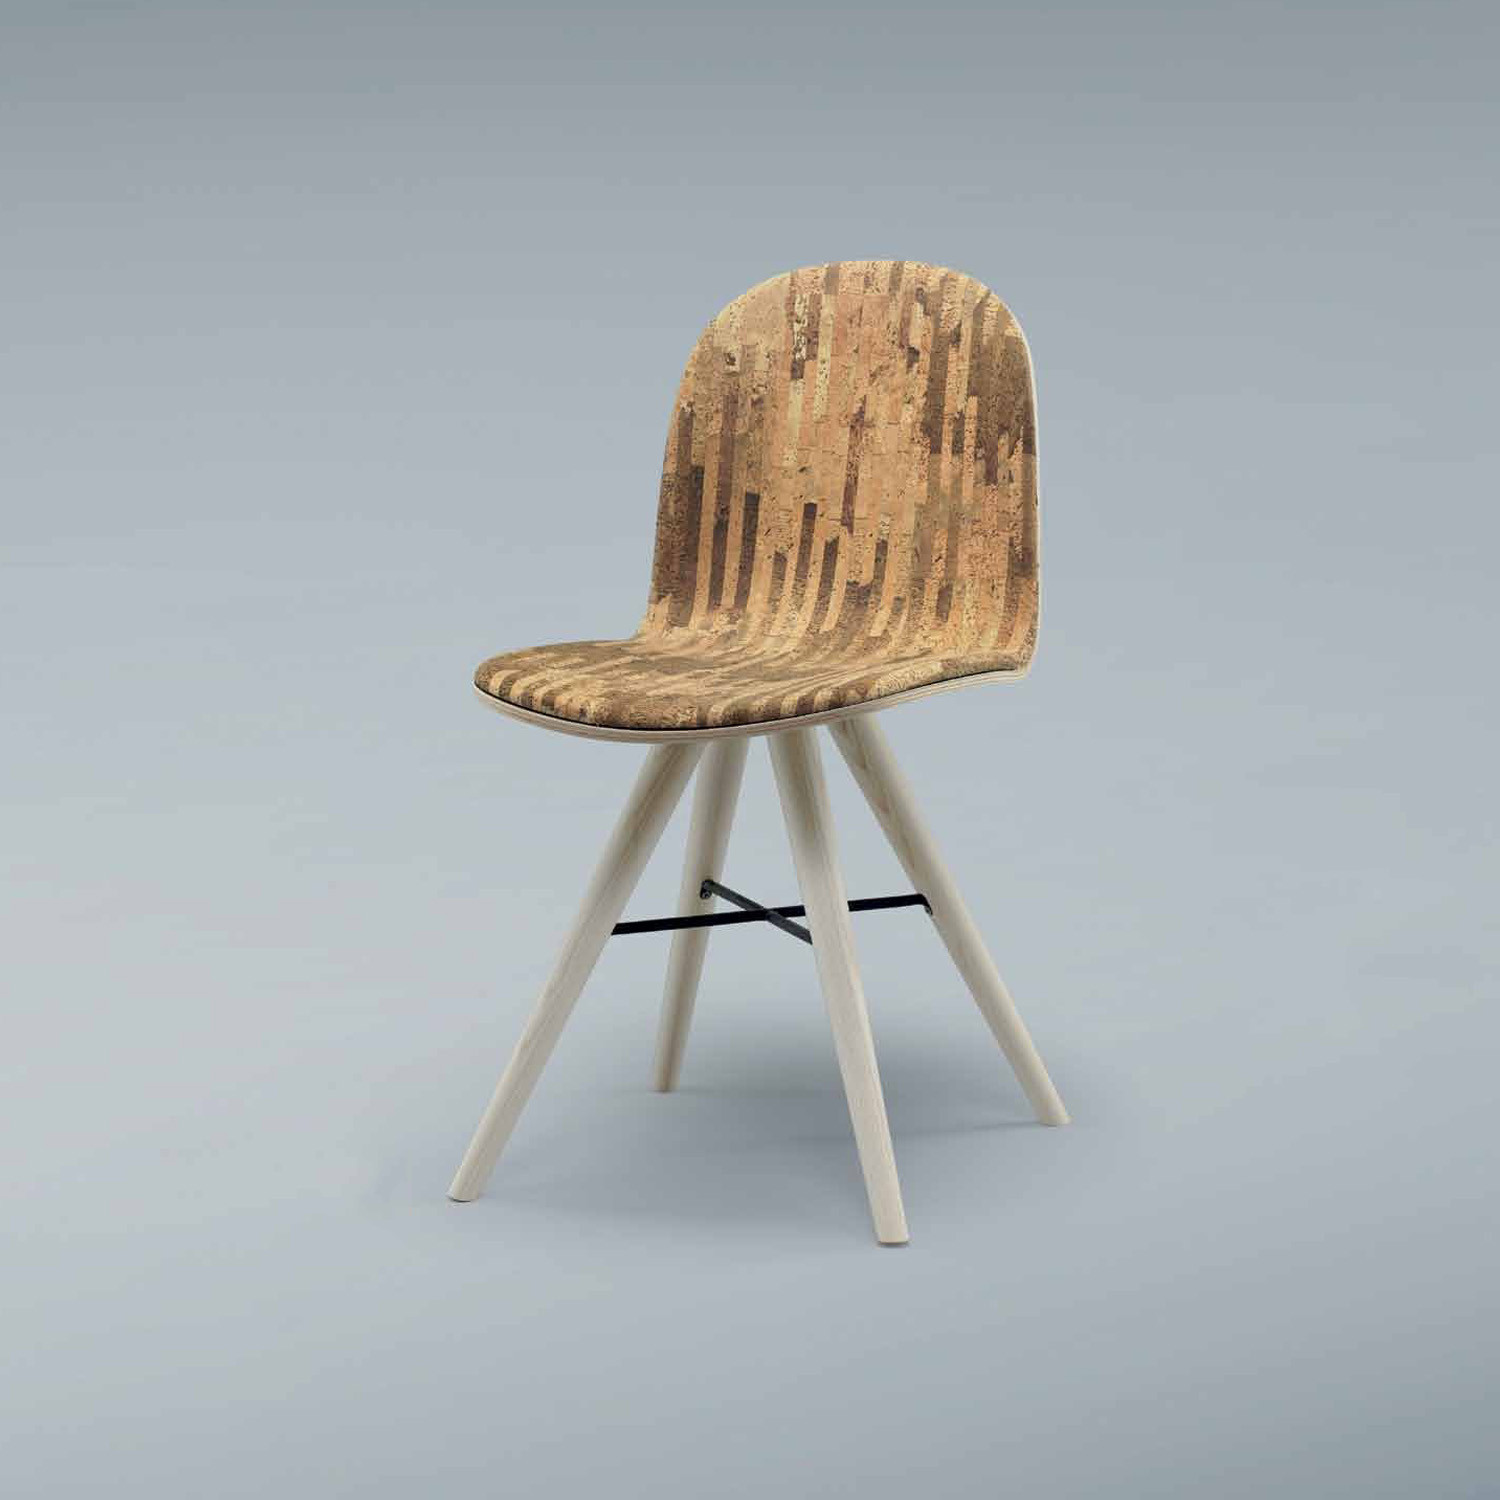 AROUNDtheTREE Seed Chair